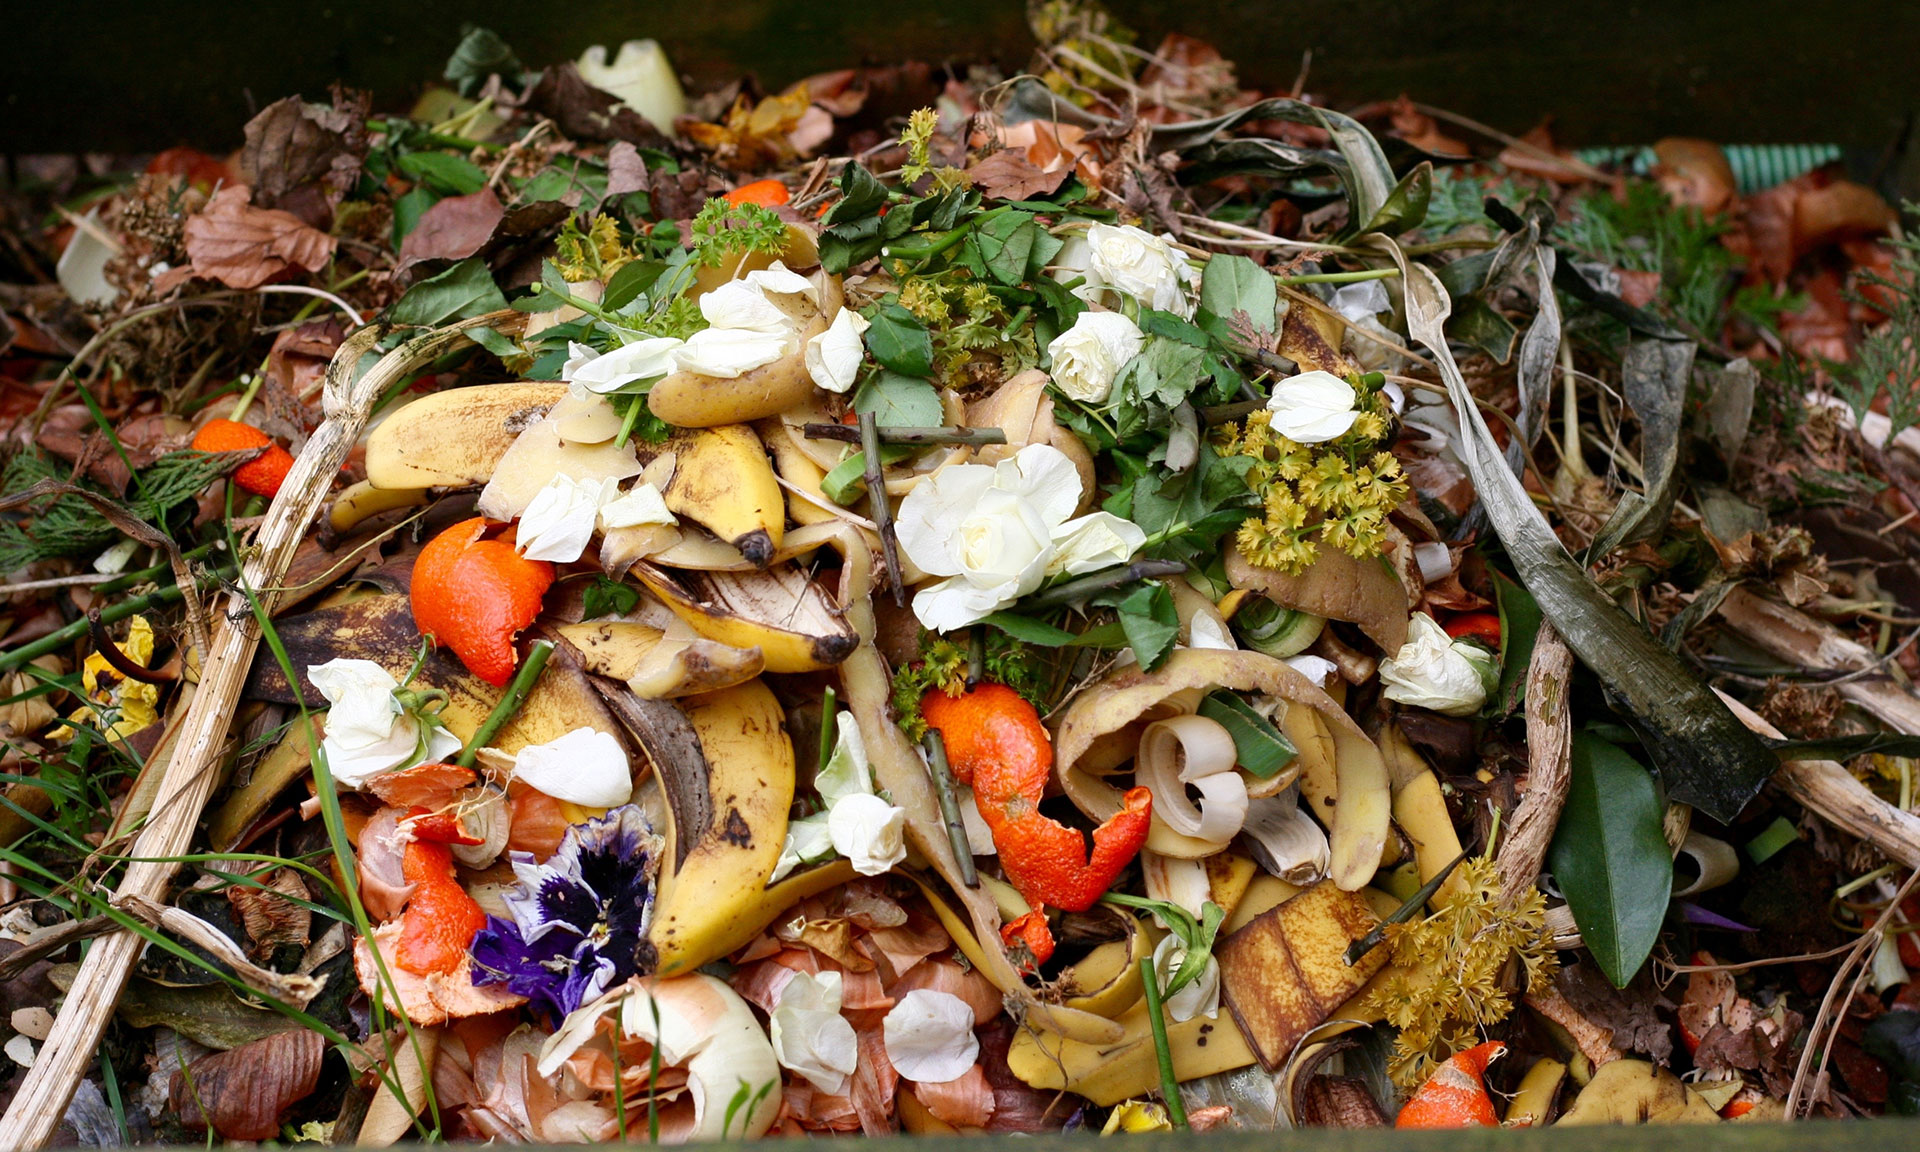 New pledge to reduce food waste by 50% from food industry